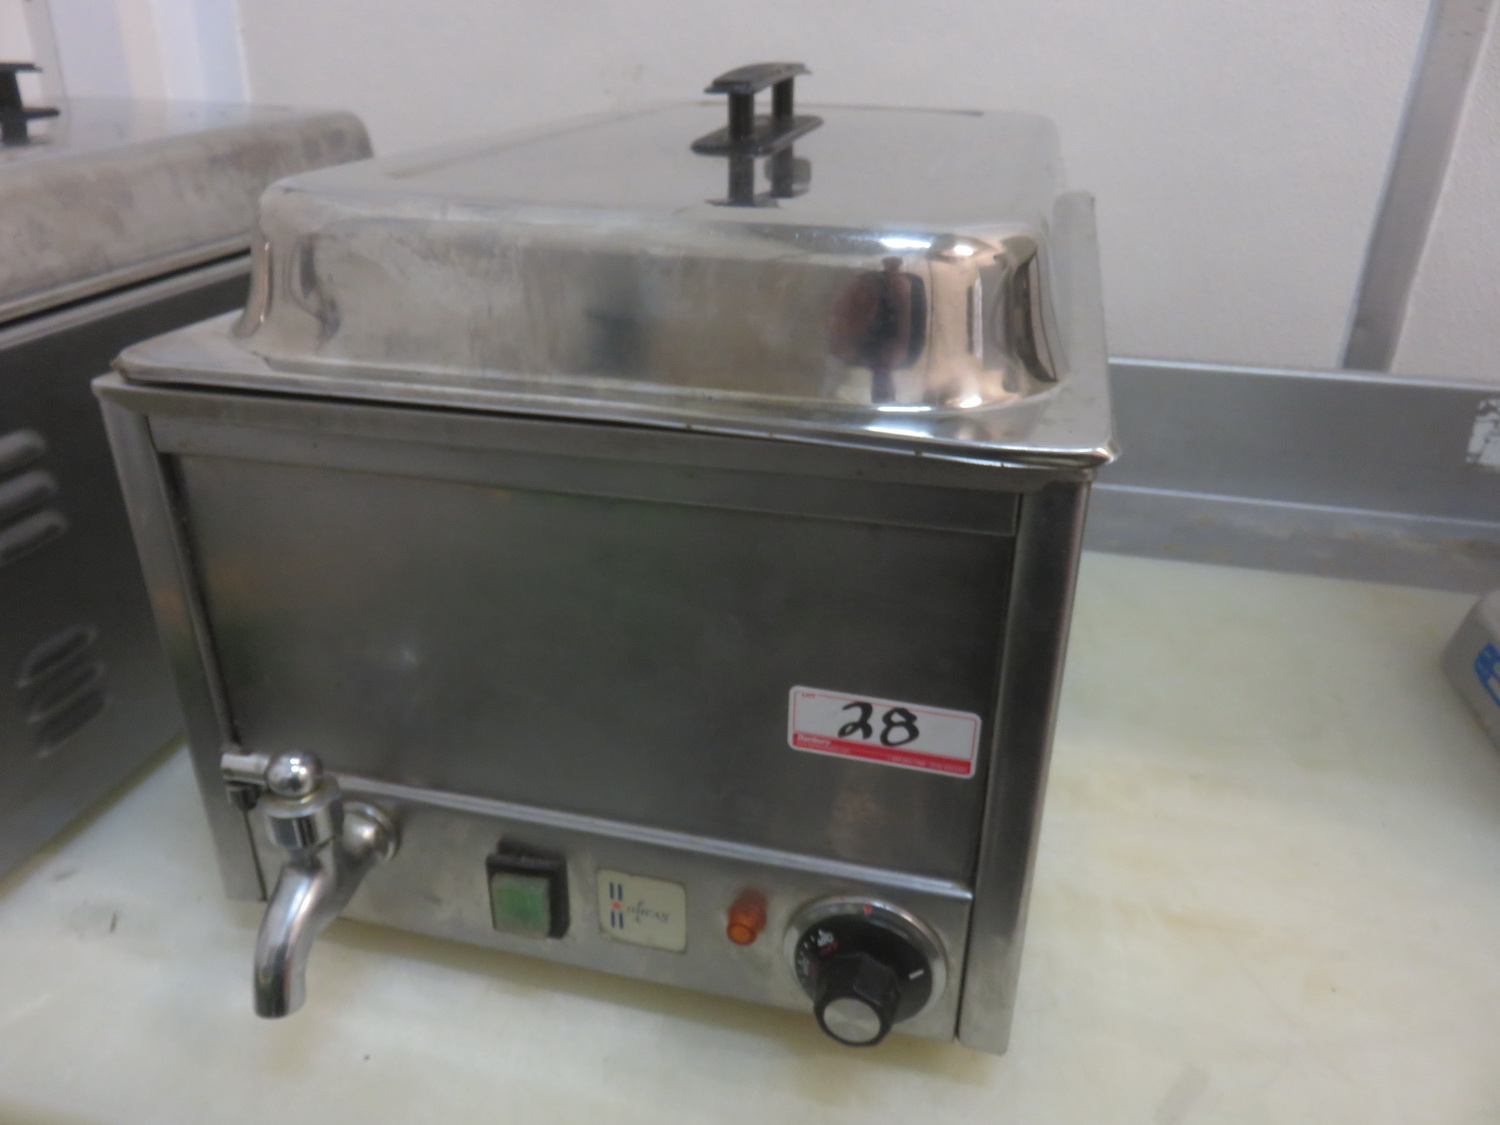 OMCAN TS-9000 FOOD WARMER